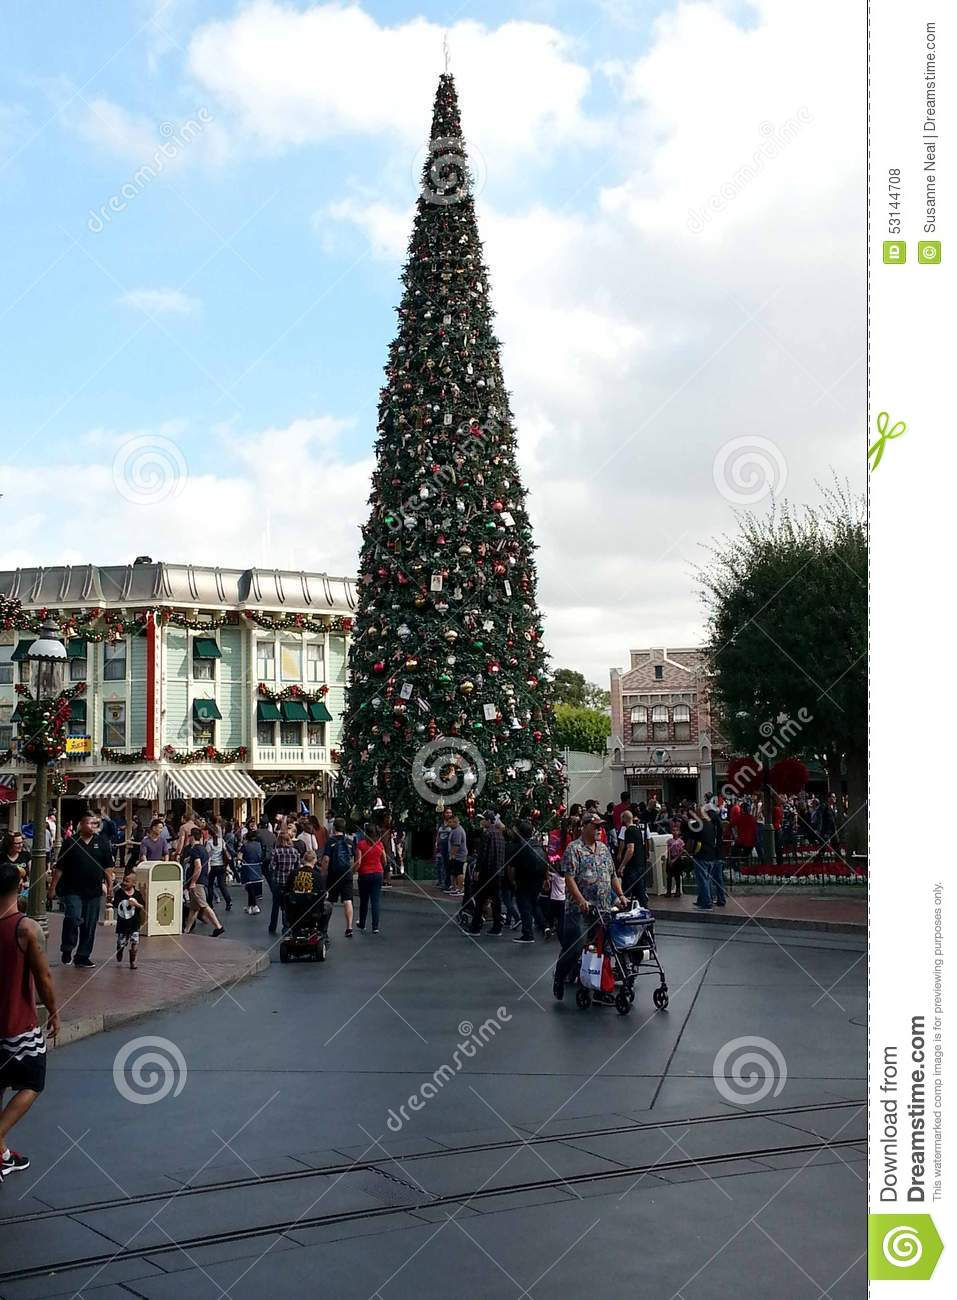 Disneyland Christmas Tree On Main Street Editorial Stock